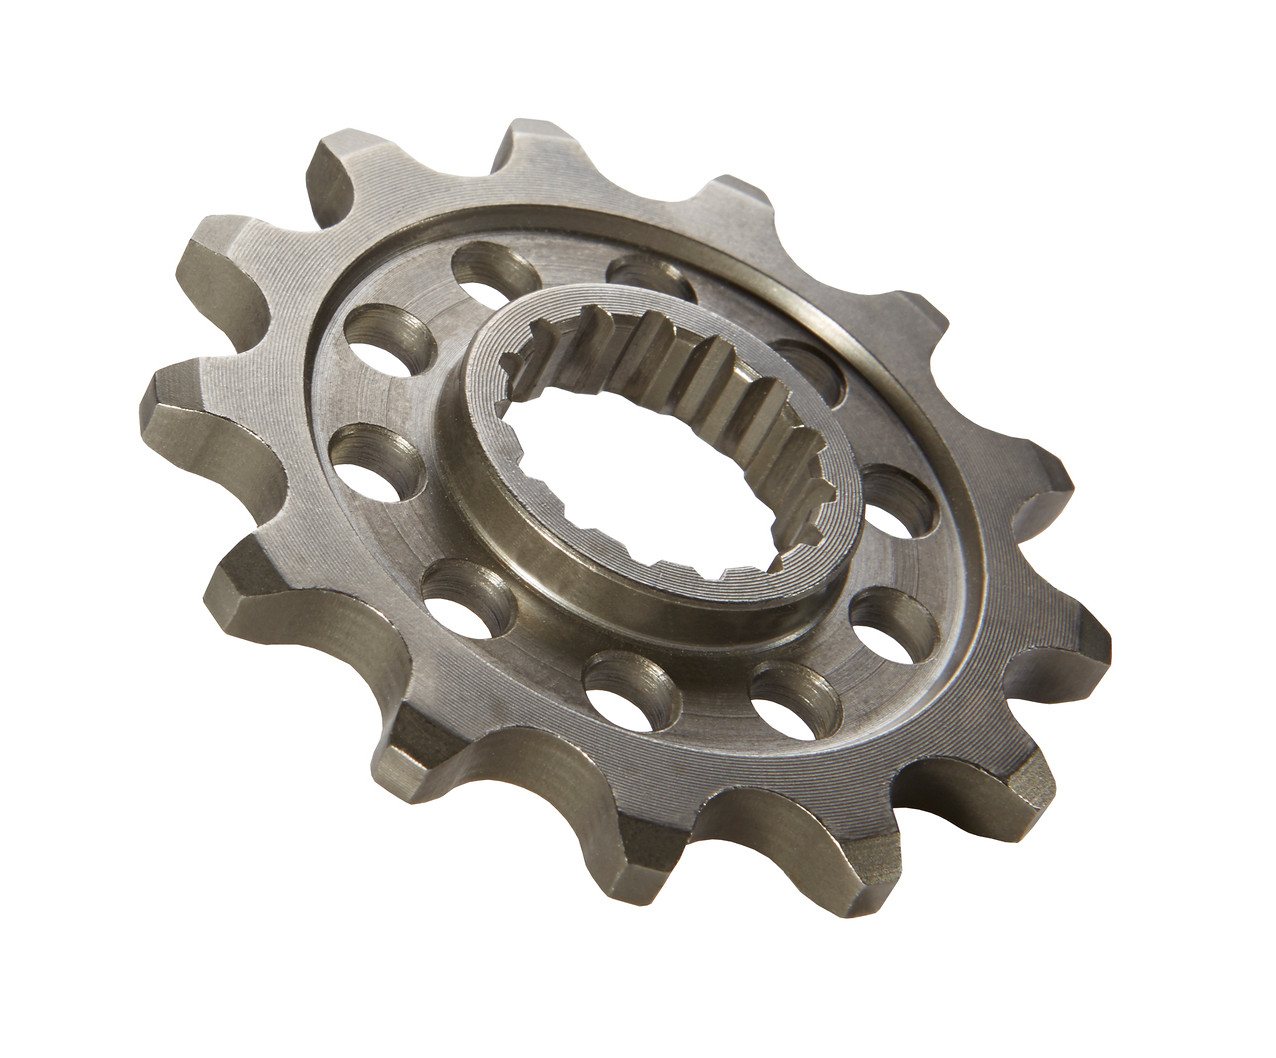 Next Components R-Series Counter Shaft Sprocket  Next Components R-Series Counter Shaft Sprocket